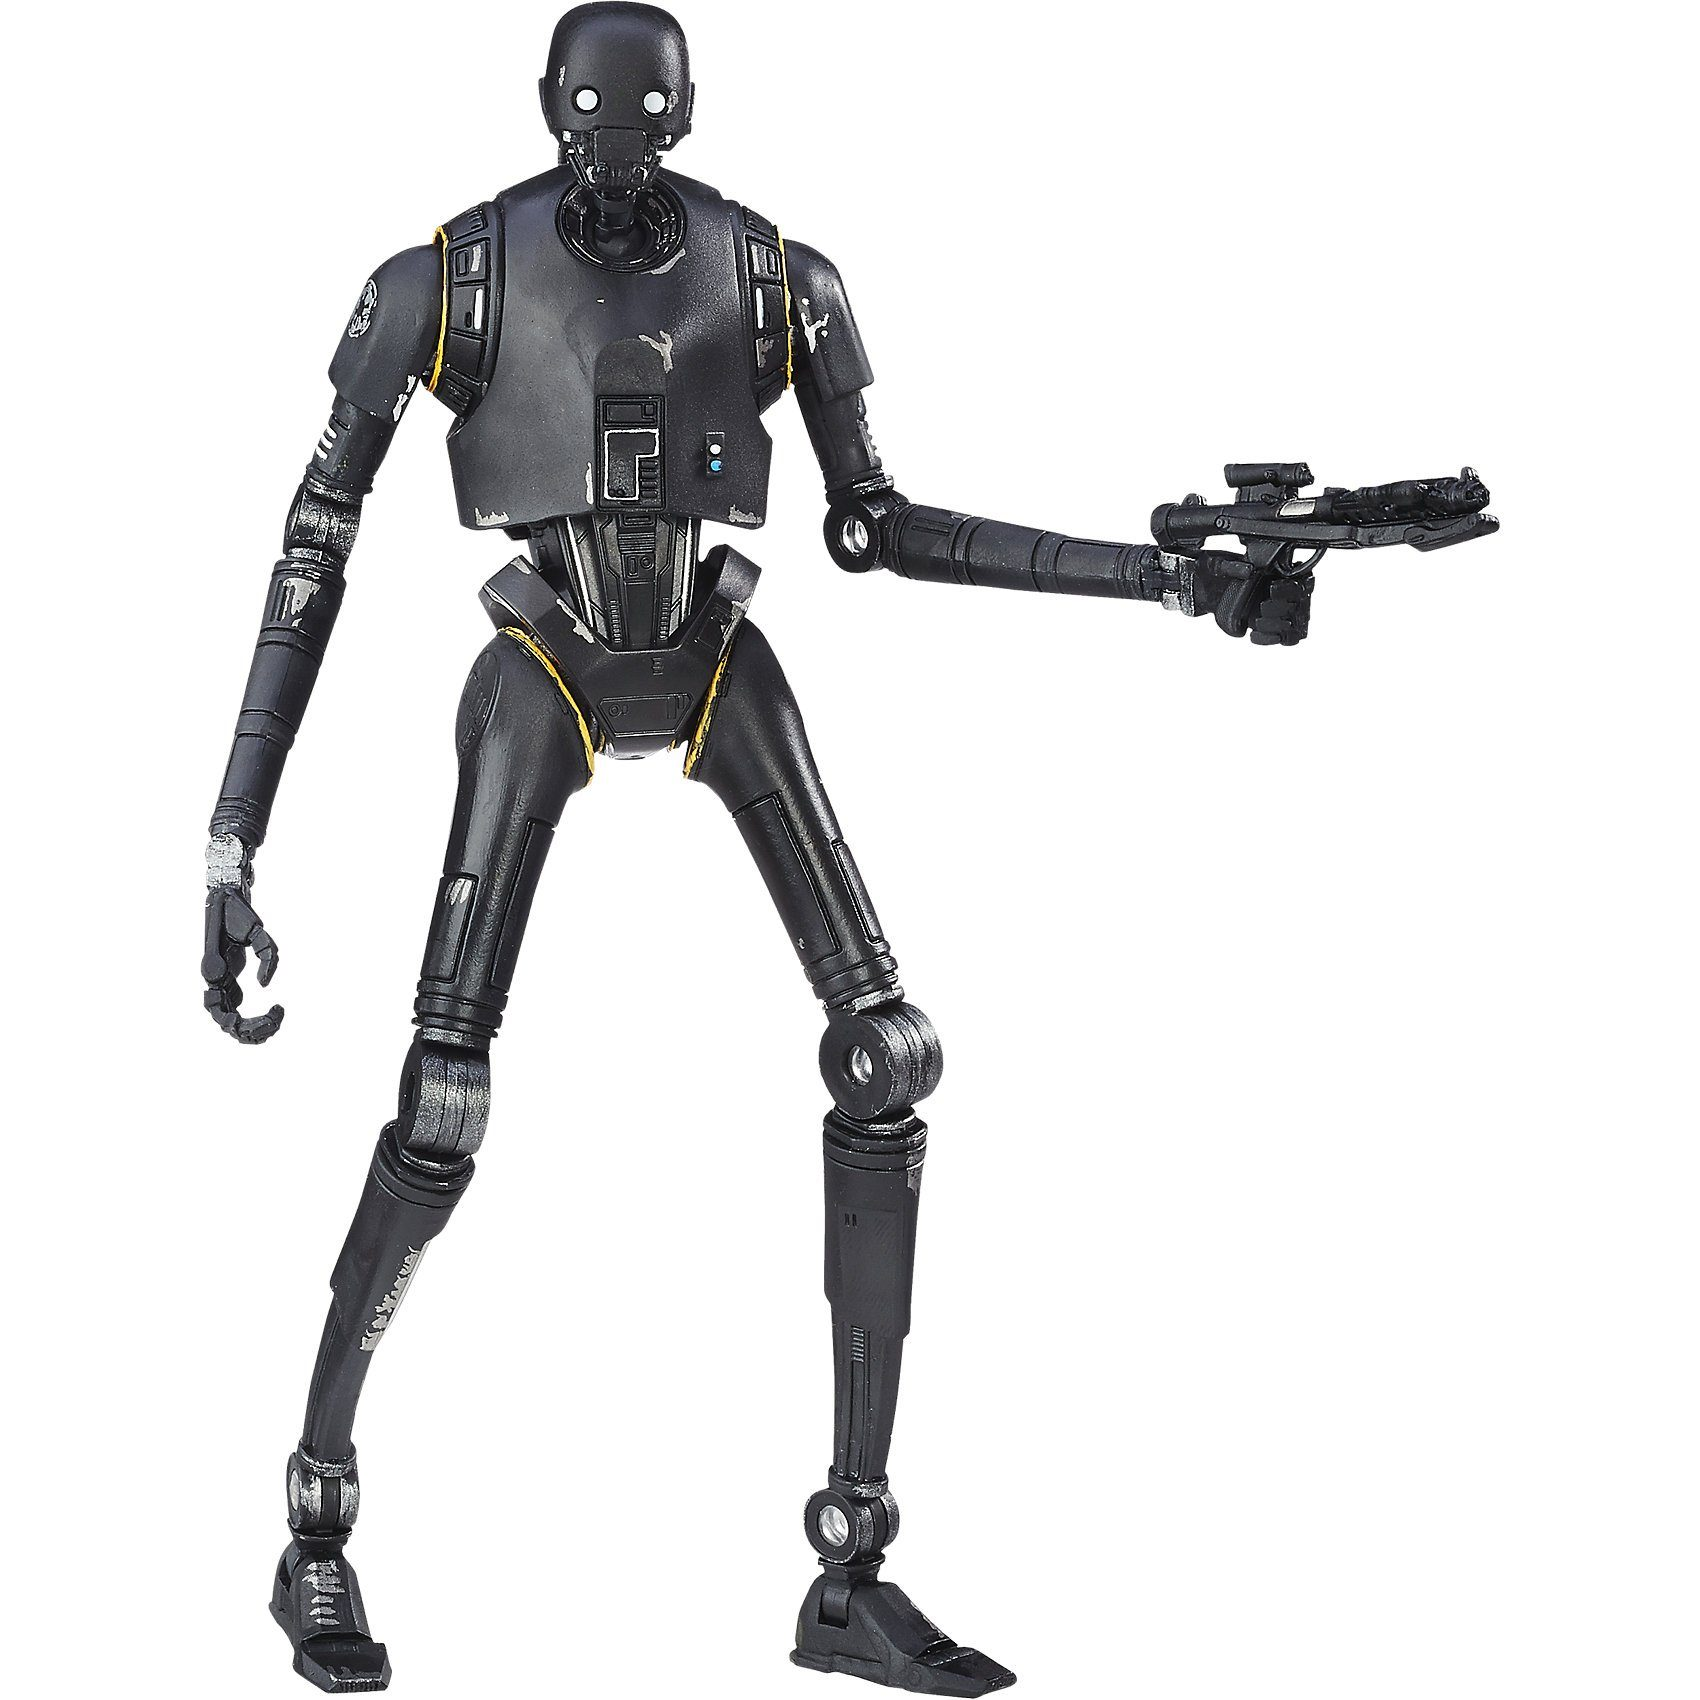 Hasbro Star Wars Rogue One - The Black Series - Figur K-2SO 15 cm